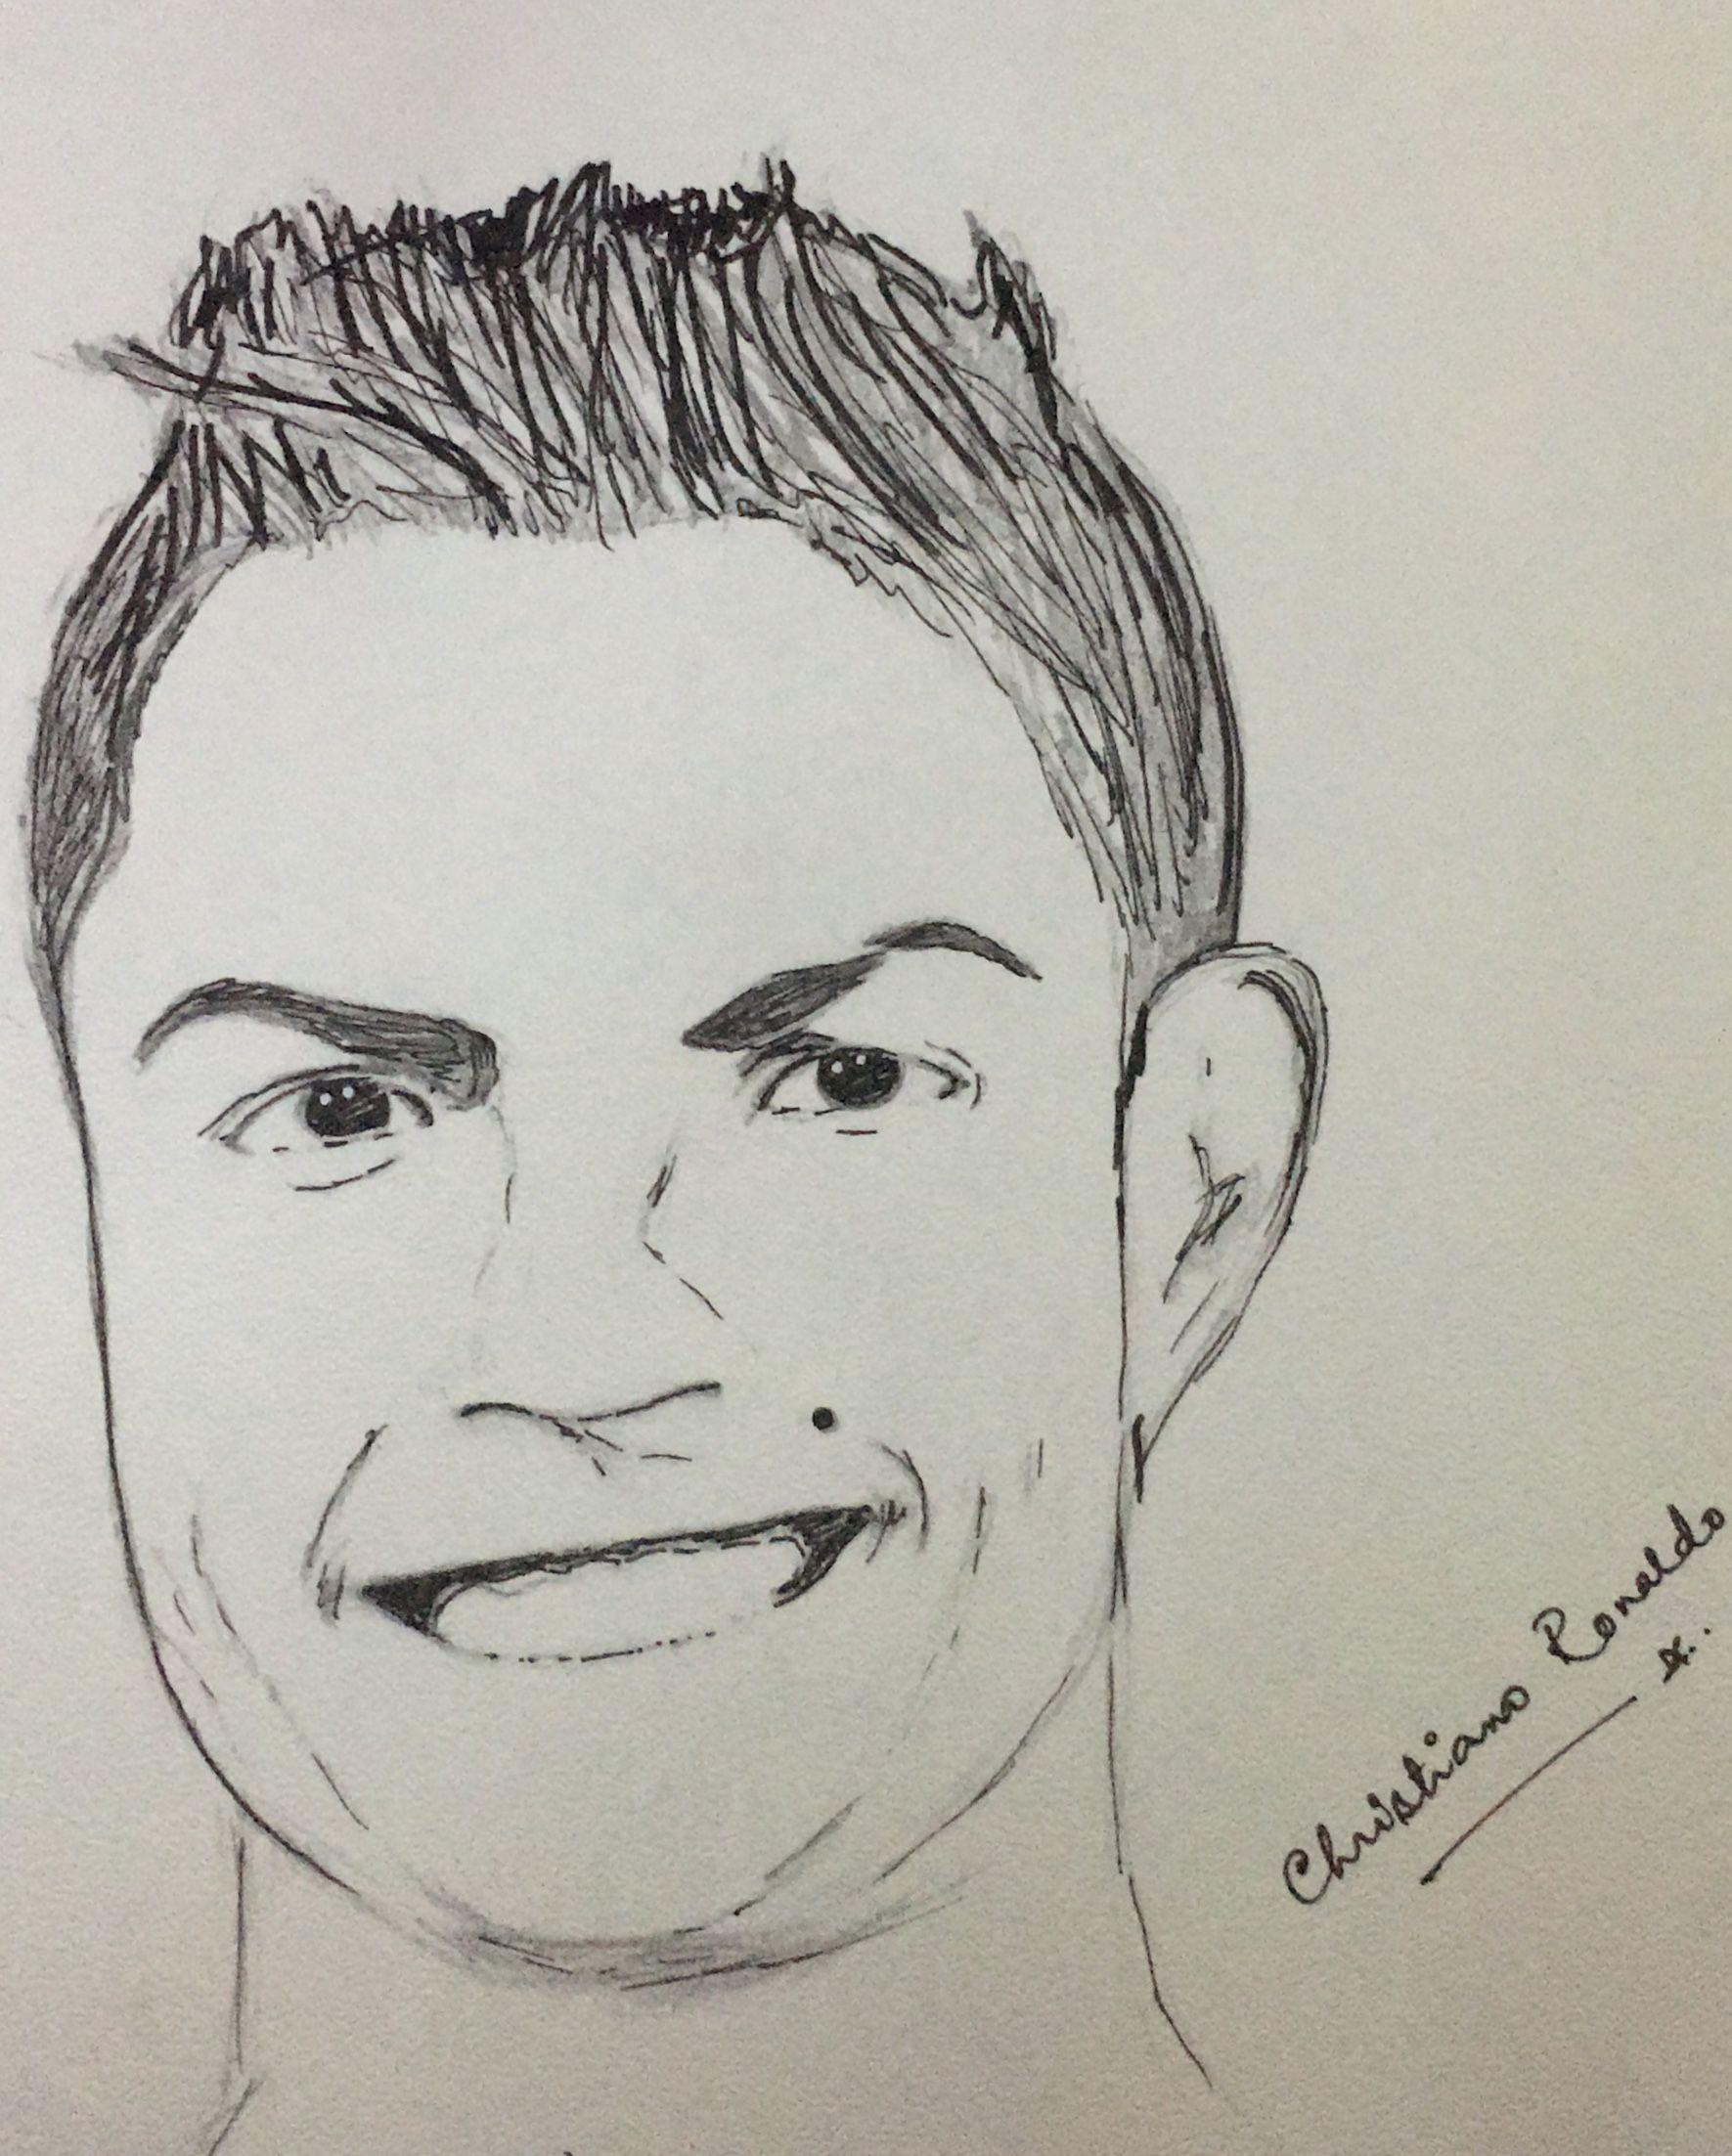 Christiano ronaldo sketch by swarnima drawing😘👌🏻👌🏻